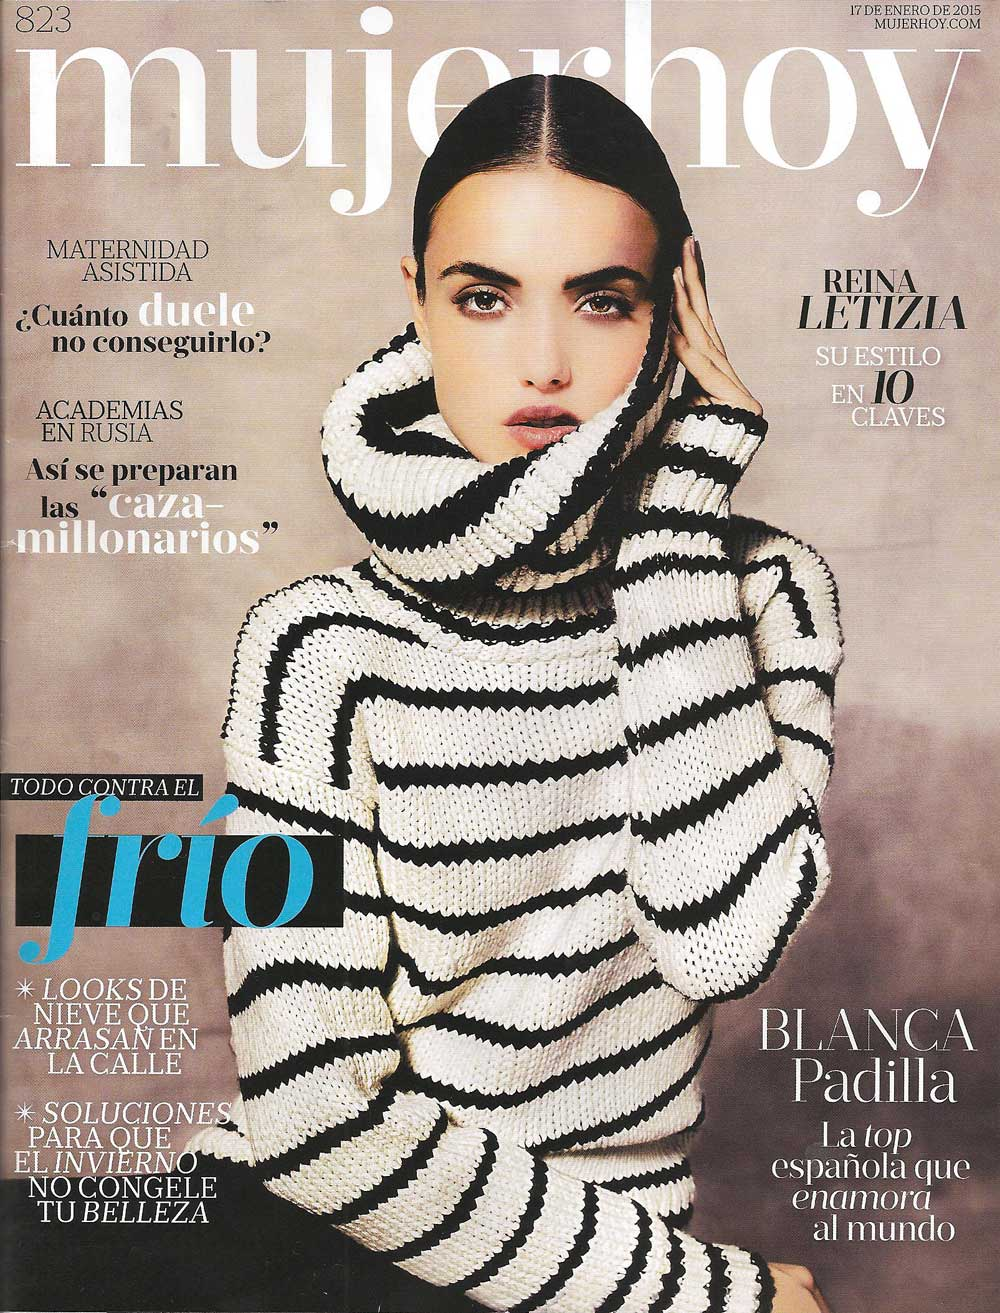 mujer-hoy_cover